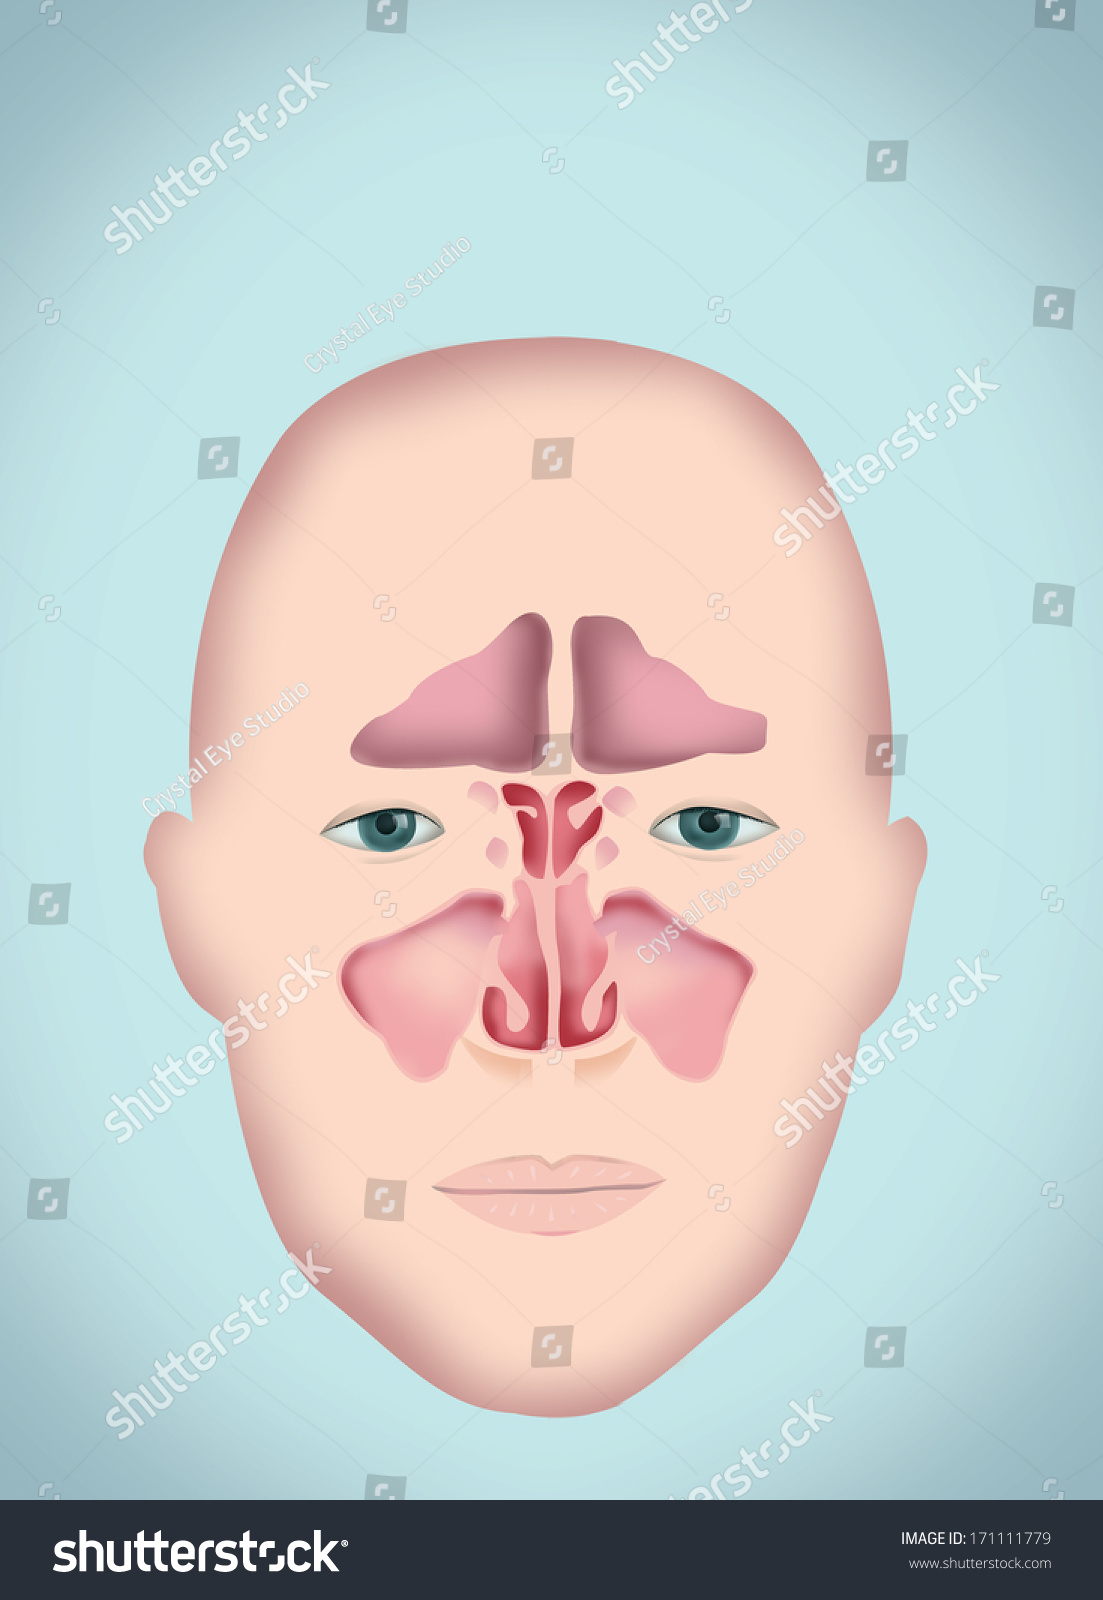 hight resolution of sinus diagram human anatomy without labels version